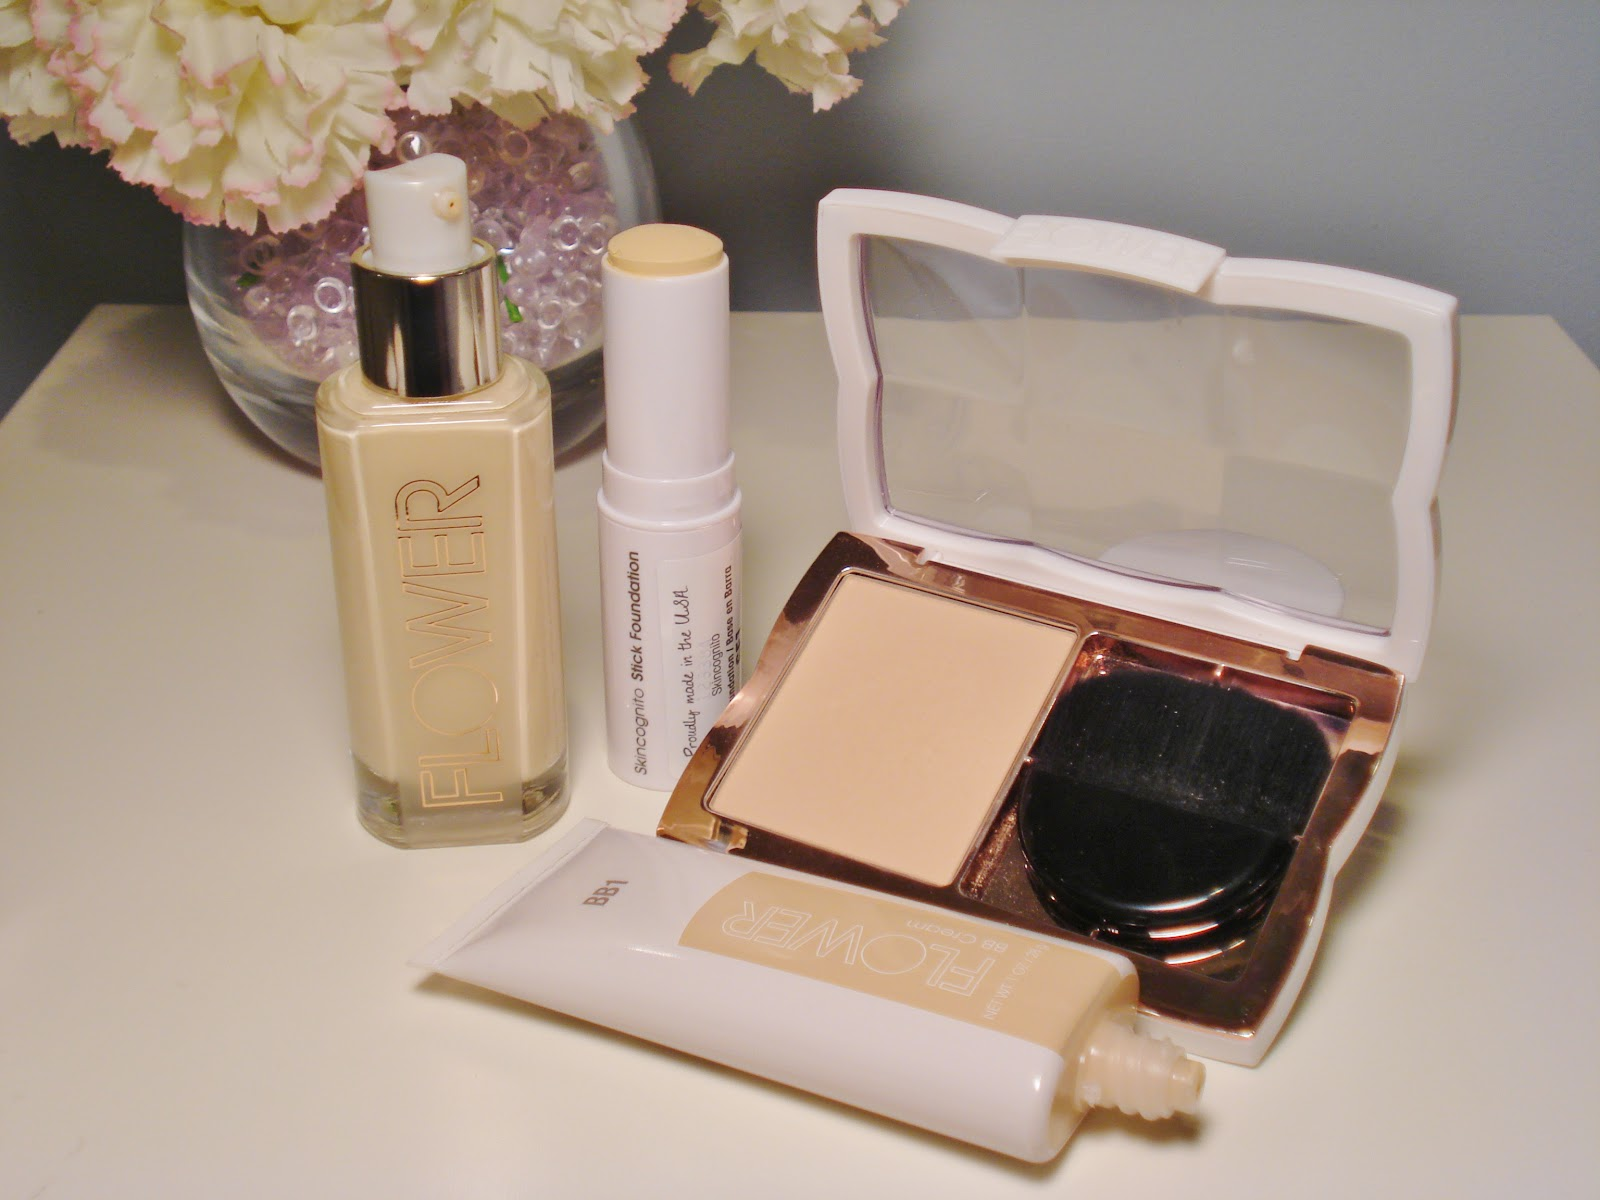 Flower beauty from drew barrymore first impressions makeupwednesday izmirmasajfo